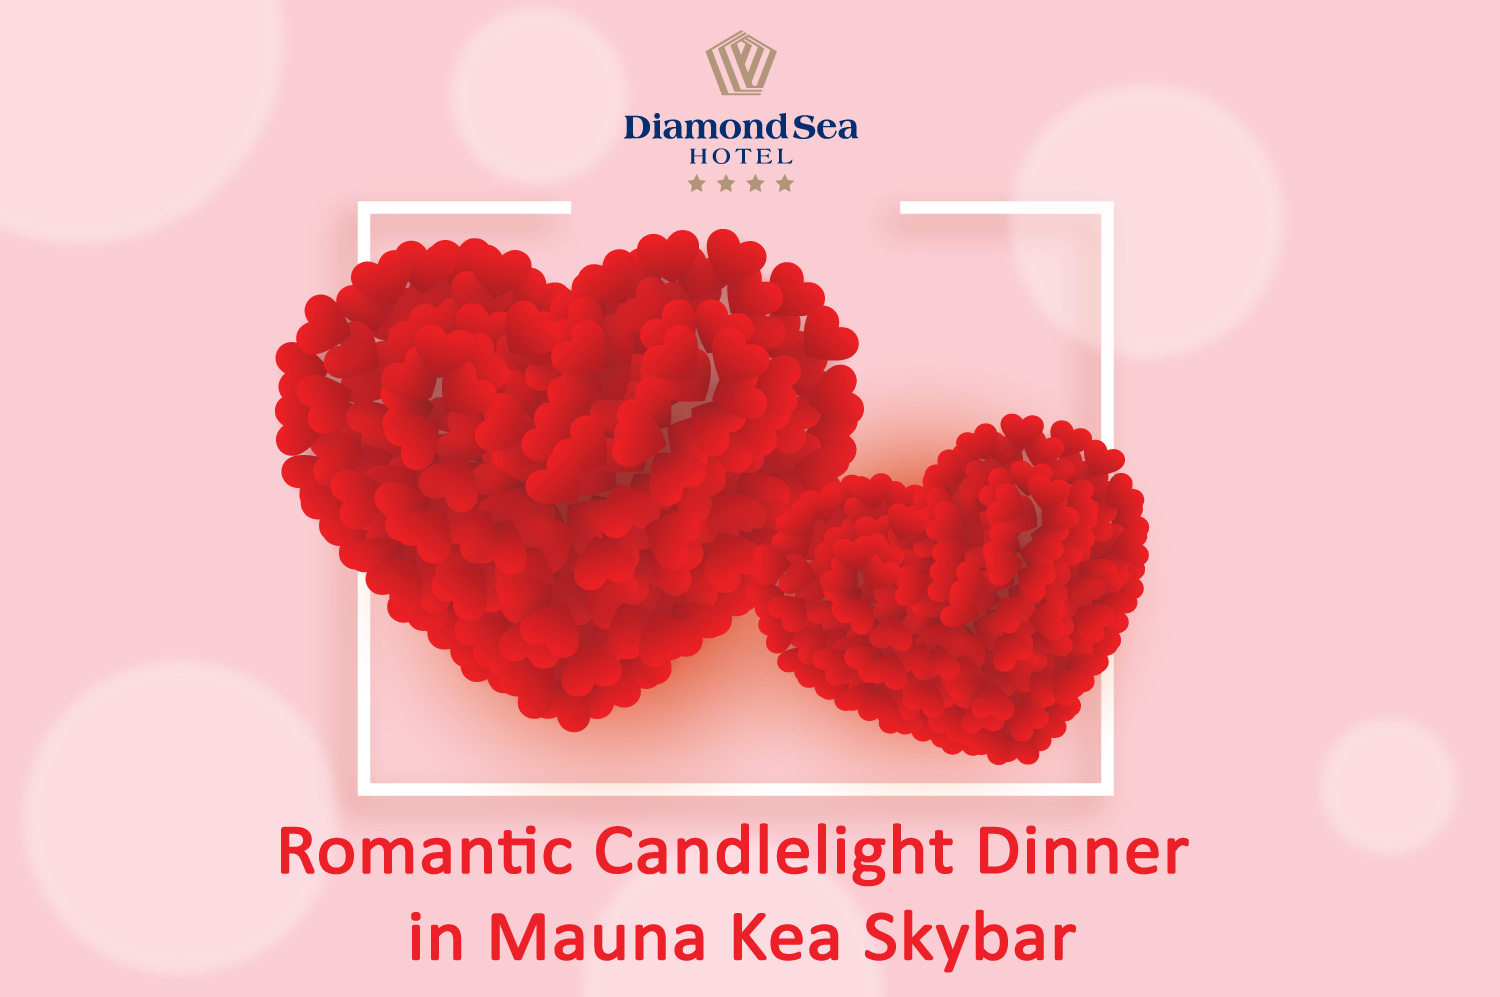 Romantic Candlelight Dinner in Mauna Kea Skybar